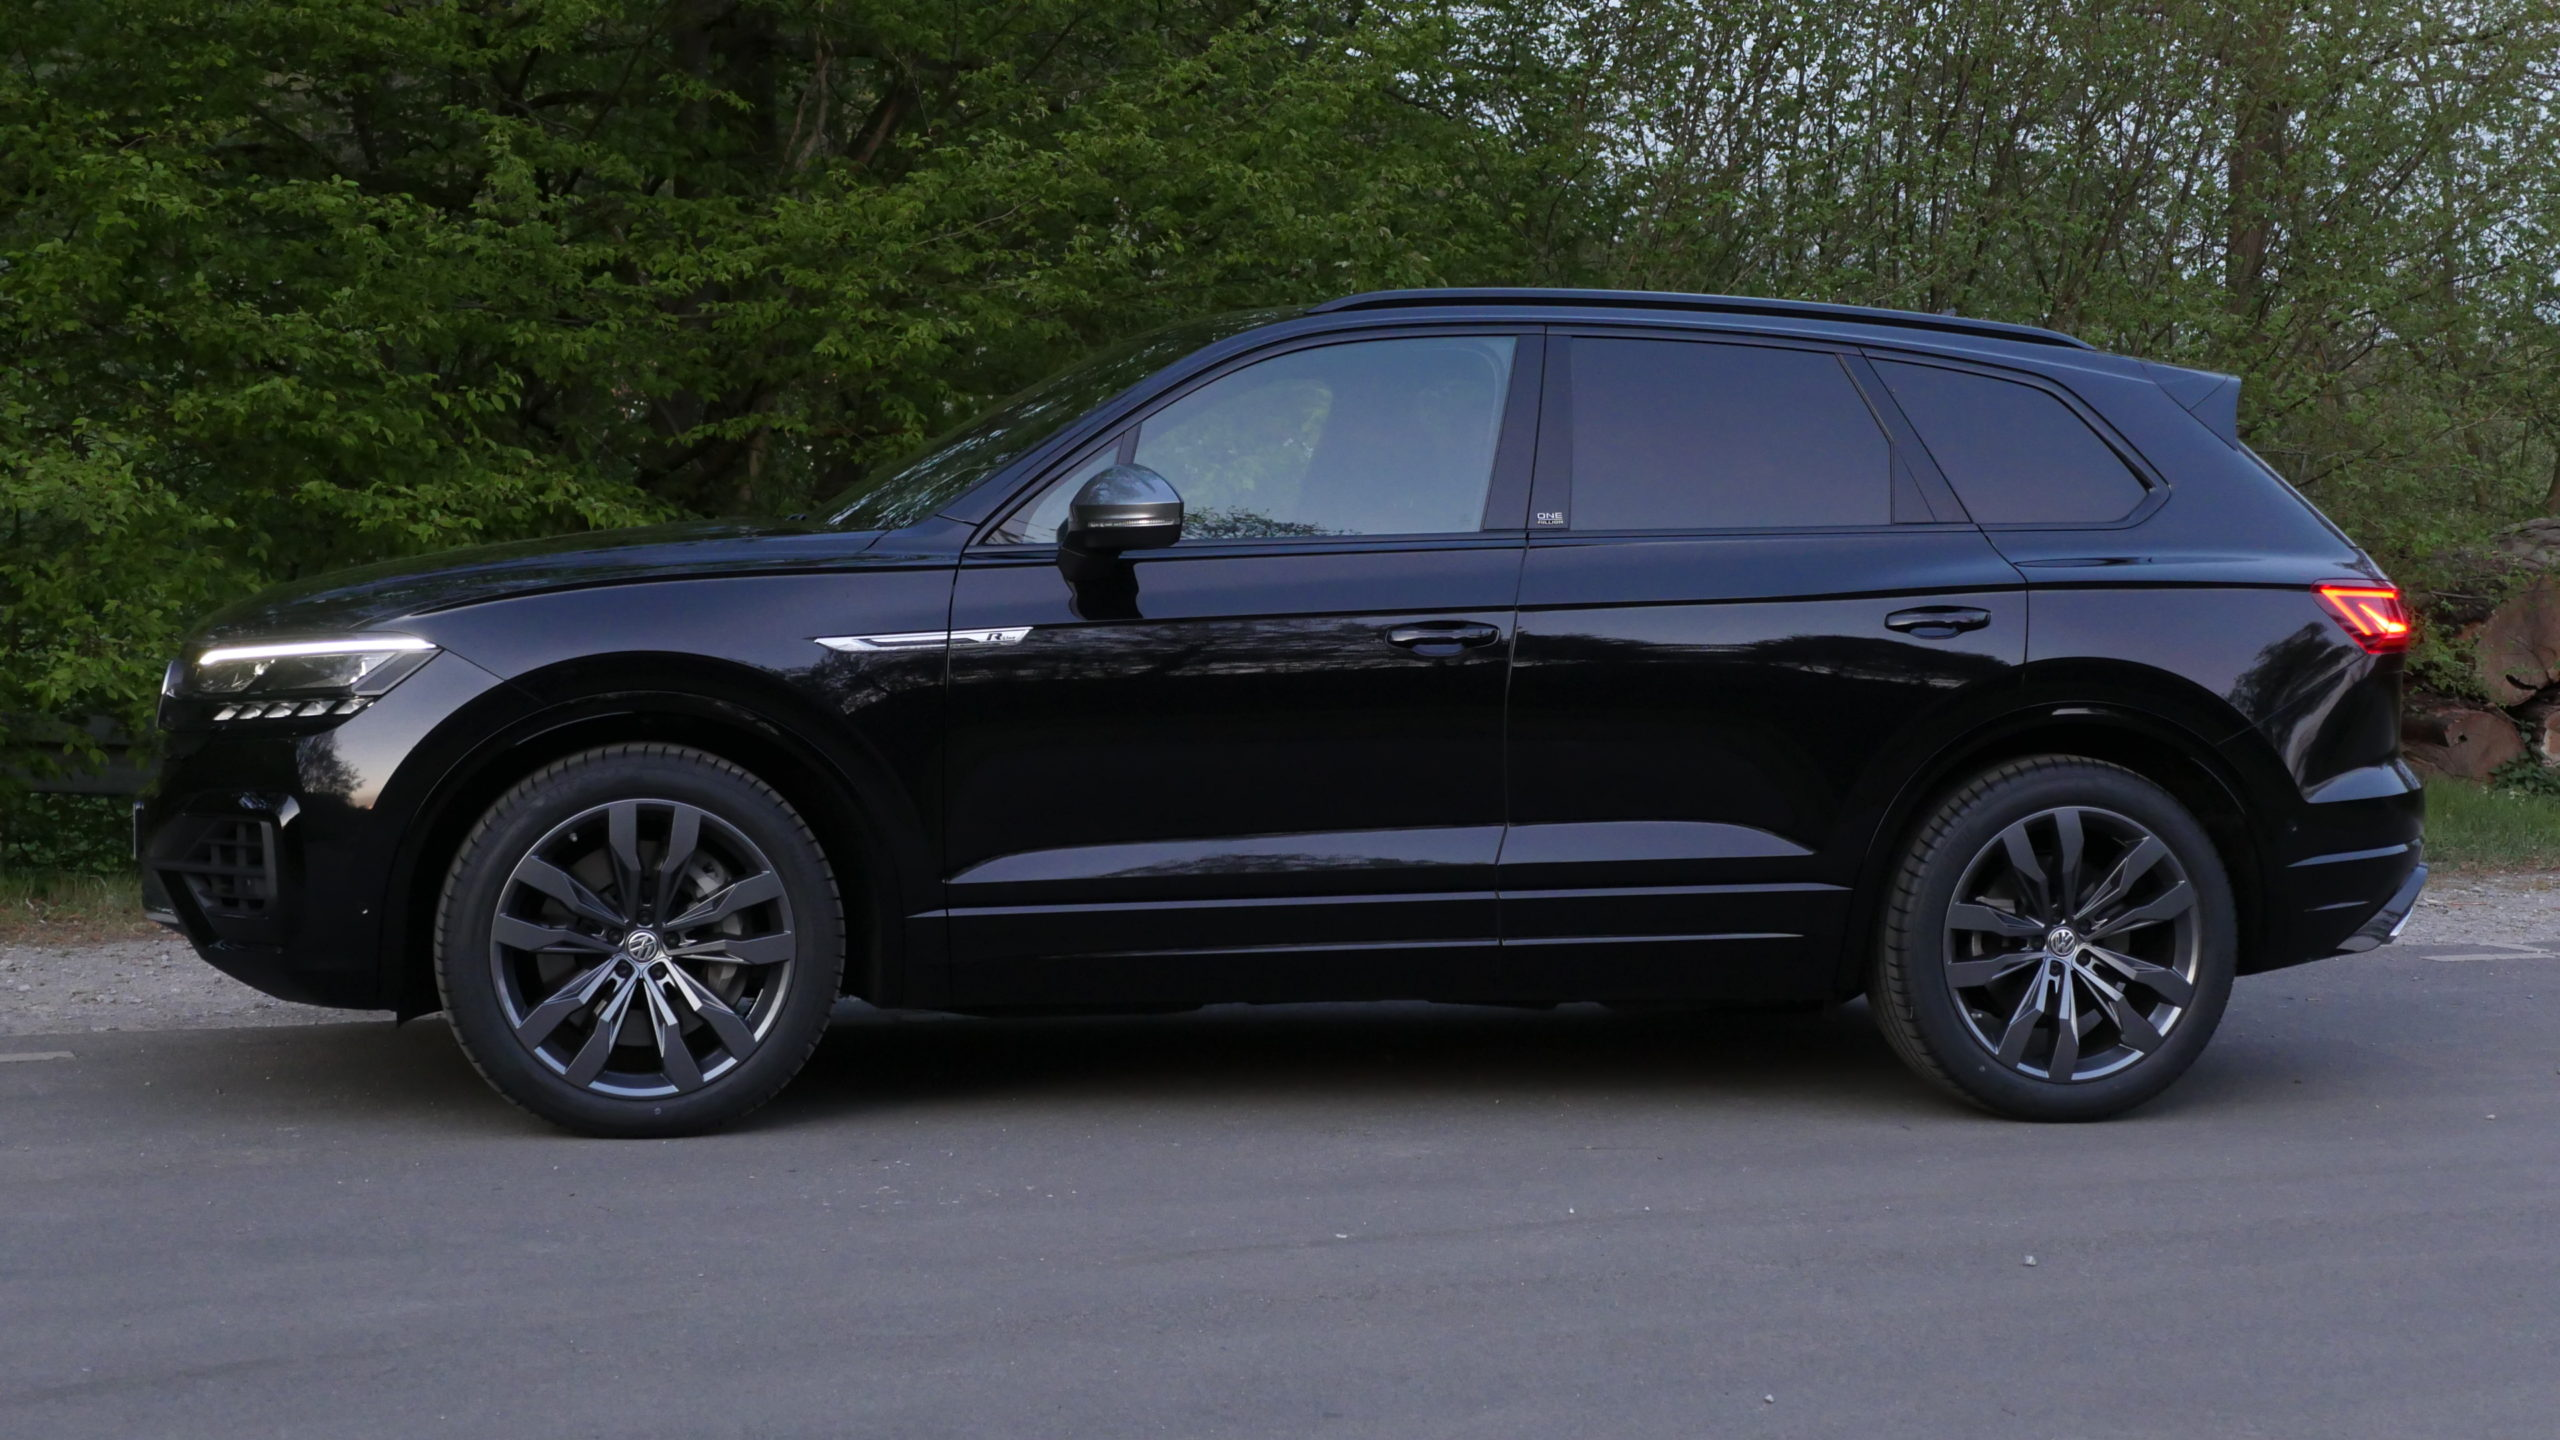 2020 Volkswagen Touareg Price and Release date